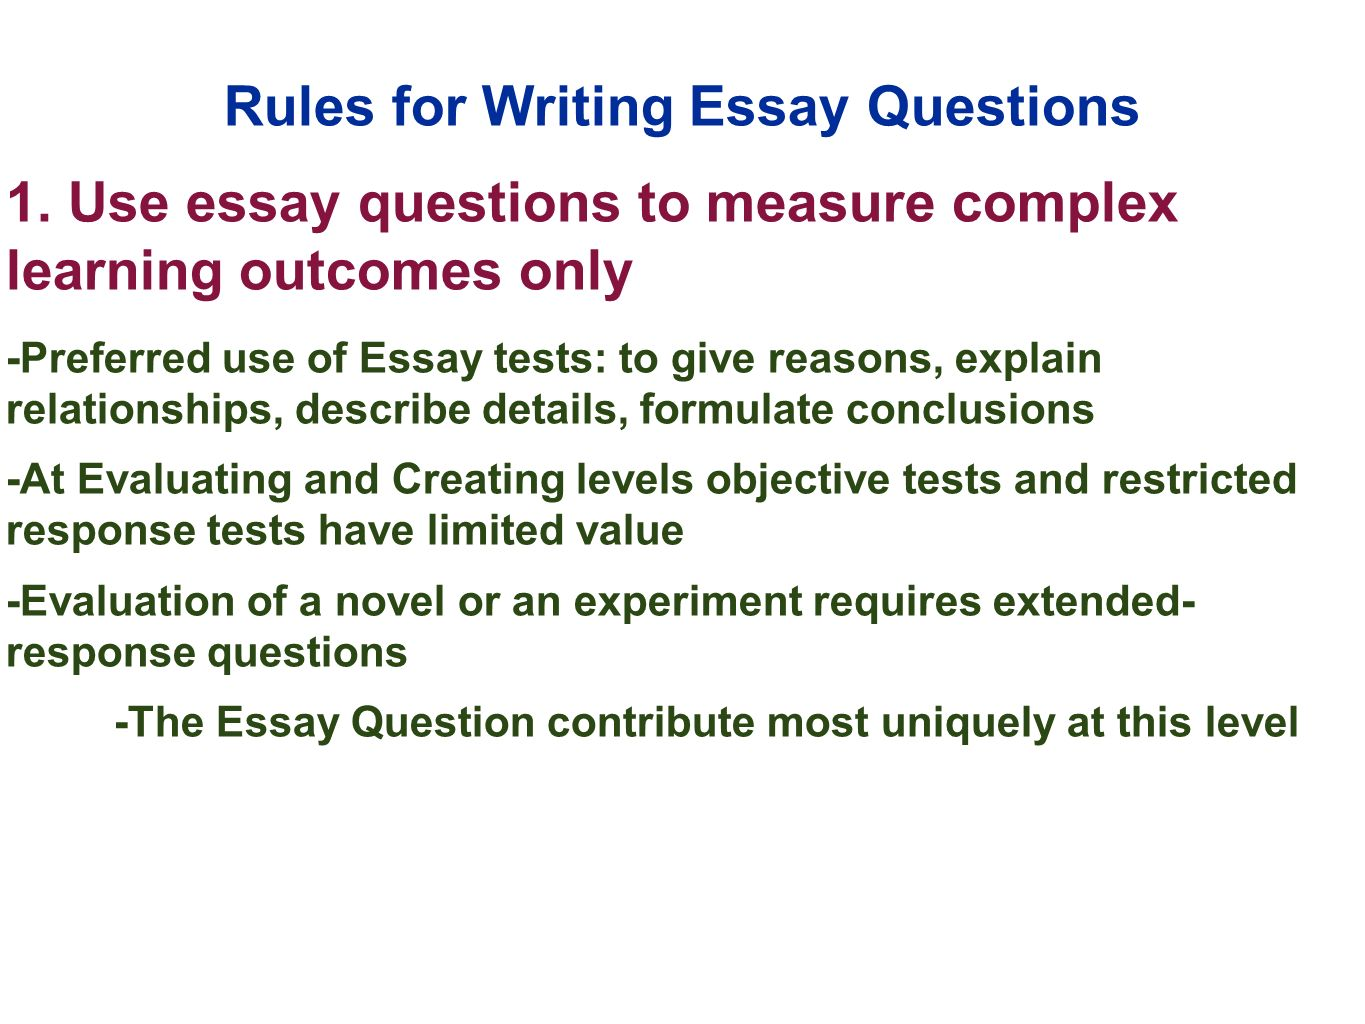 Rules For Typing An Essay  Writing Numbers Rules For Typing An Essay